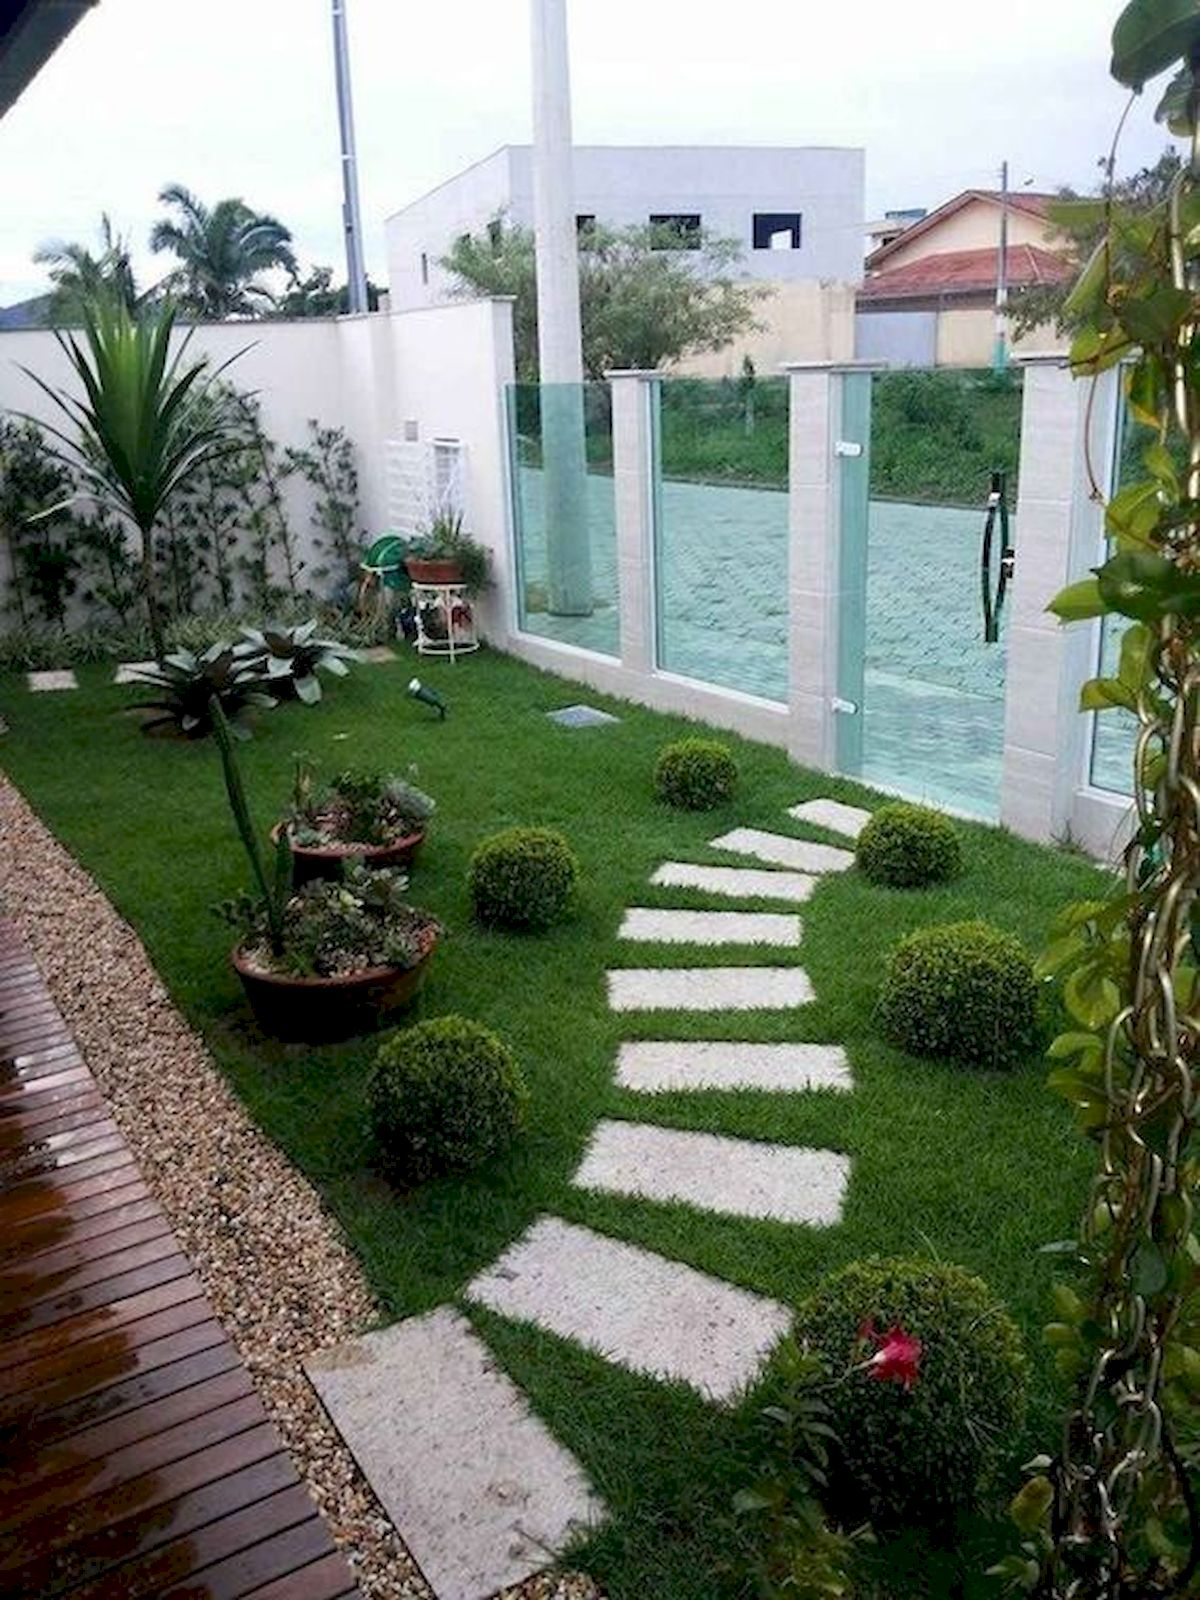 48 Stunning Front Yard Landscaping Ideas That Make Beautiful Garden (16)